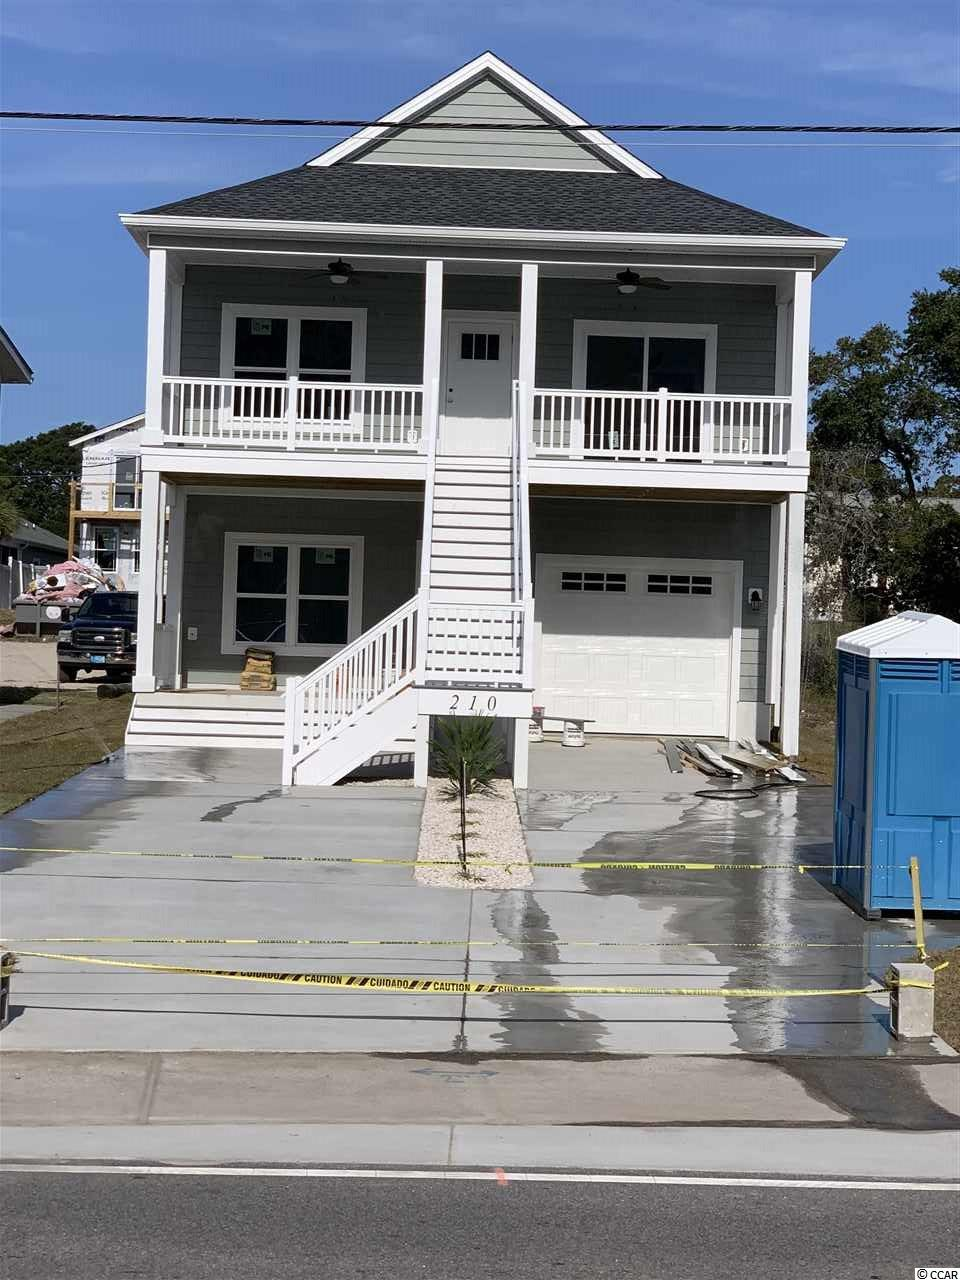 Don't miss out on New Construction with LOCATION LOCATION LOCATION  Direct Ocean View, X-Zone (no flood insurance required) 2 streets from ocean and two 1/2 blocks from main street with restaurants, shops and night life. Great Home, second home or investment property.